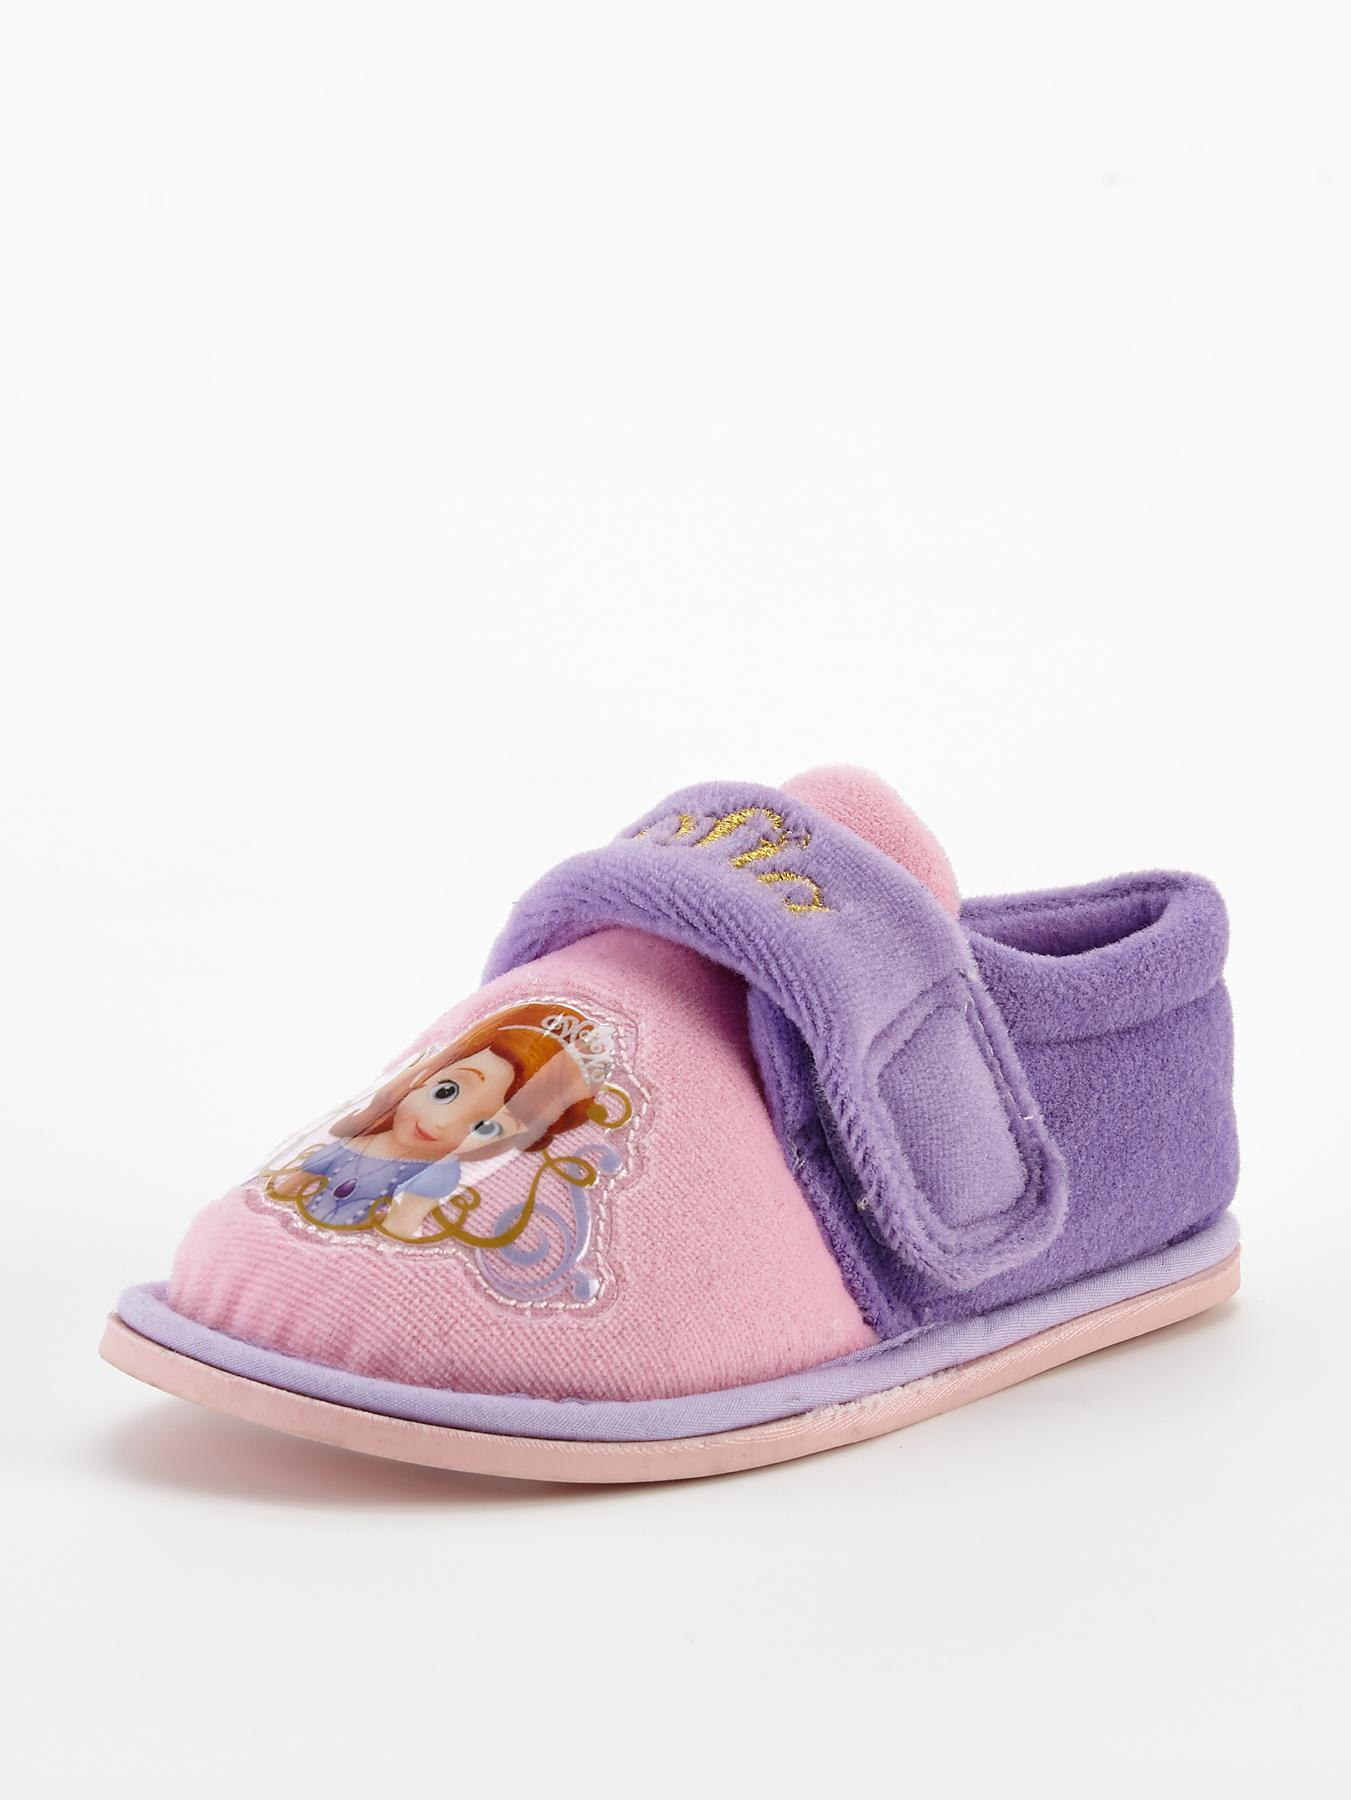 Character Princess Sofia Harbour Slippers - Pink, Pink